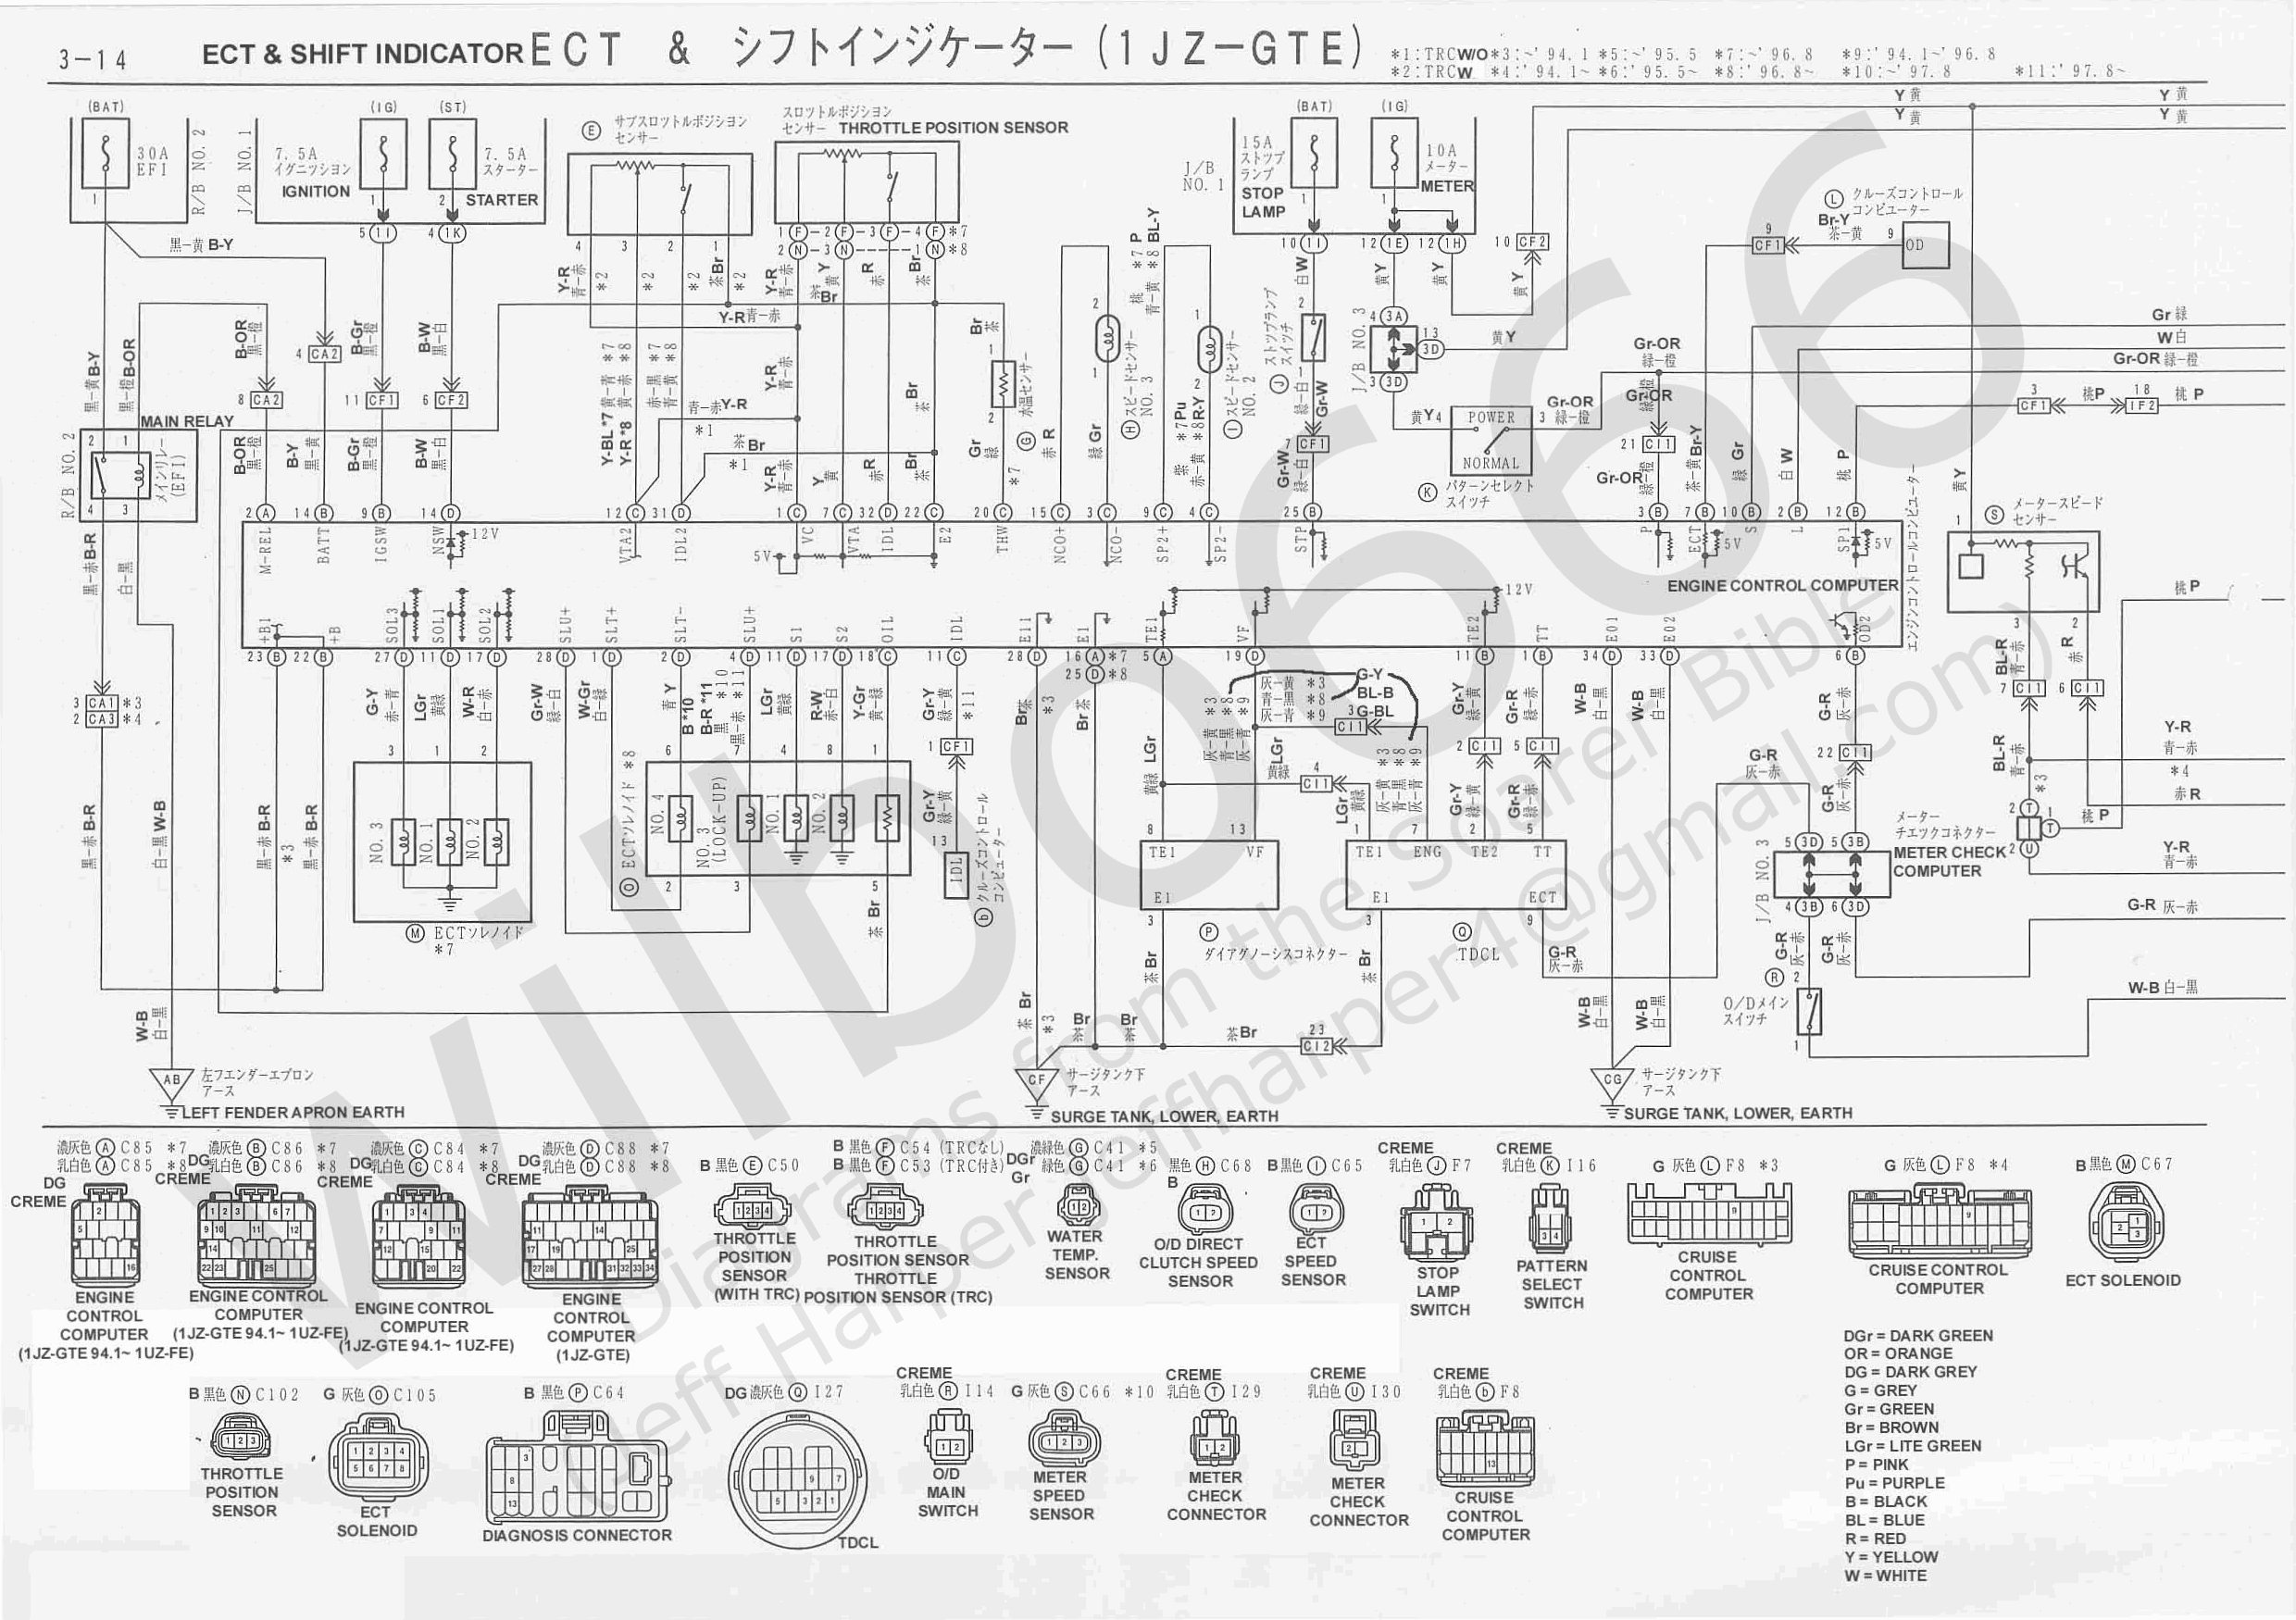 xZZ3x Electrical Wiring Diagram 6737105 3 14 1jz wiring diagram 1jz wiring harness conversion \u2022 wiring diagrams jzx90 wiring diagram at bayanpartner.co